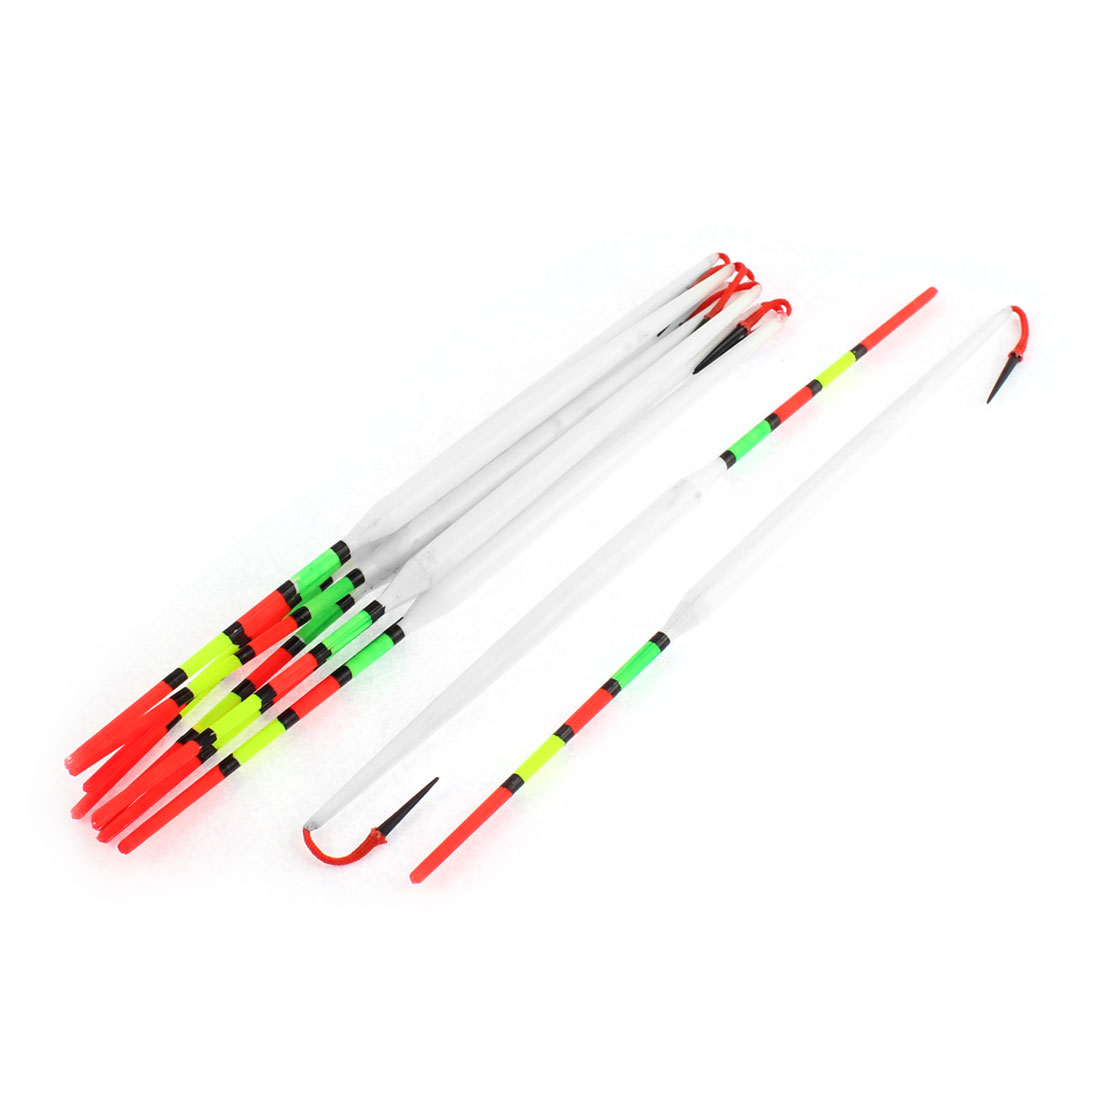 Plastic Fishing Tackle Tool Slip Bobber Float 22cm Long 10 Pcs Multicolor